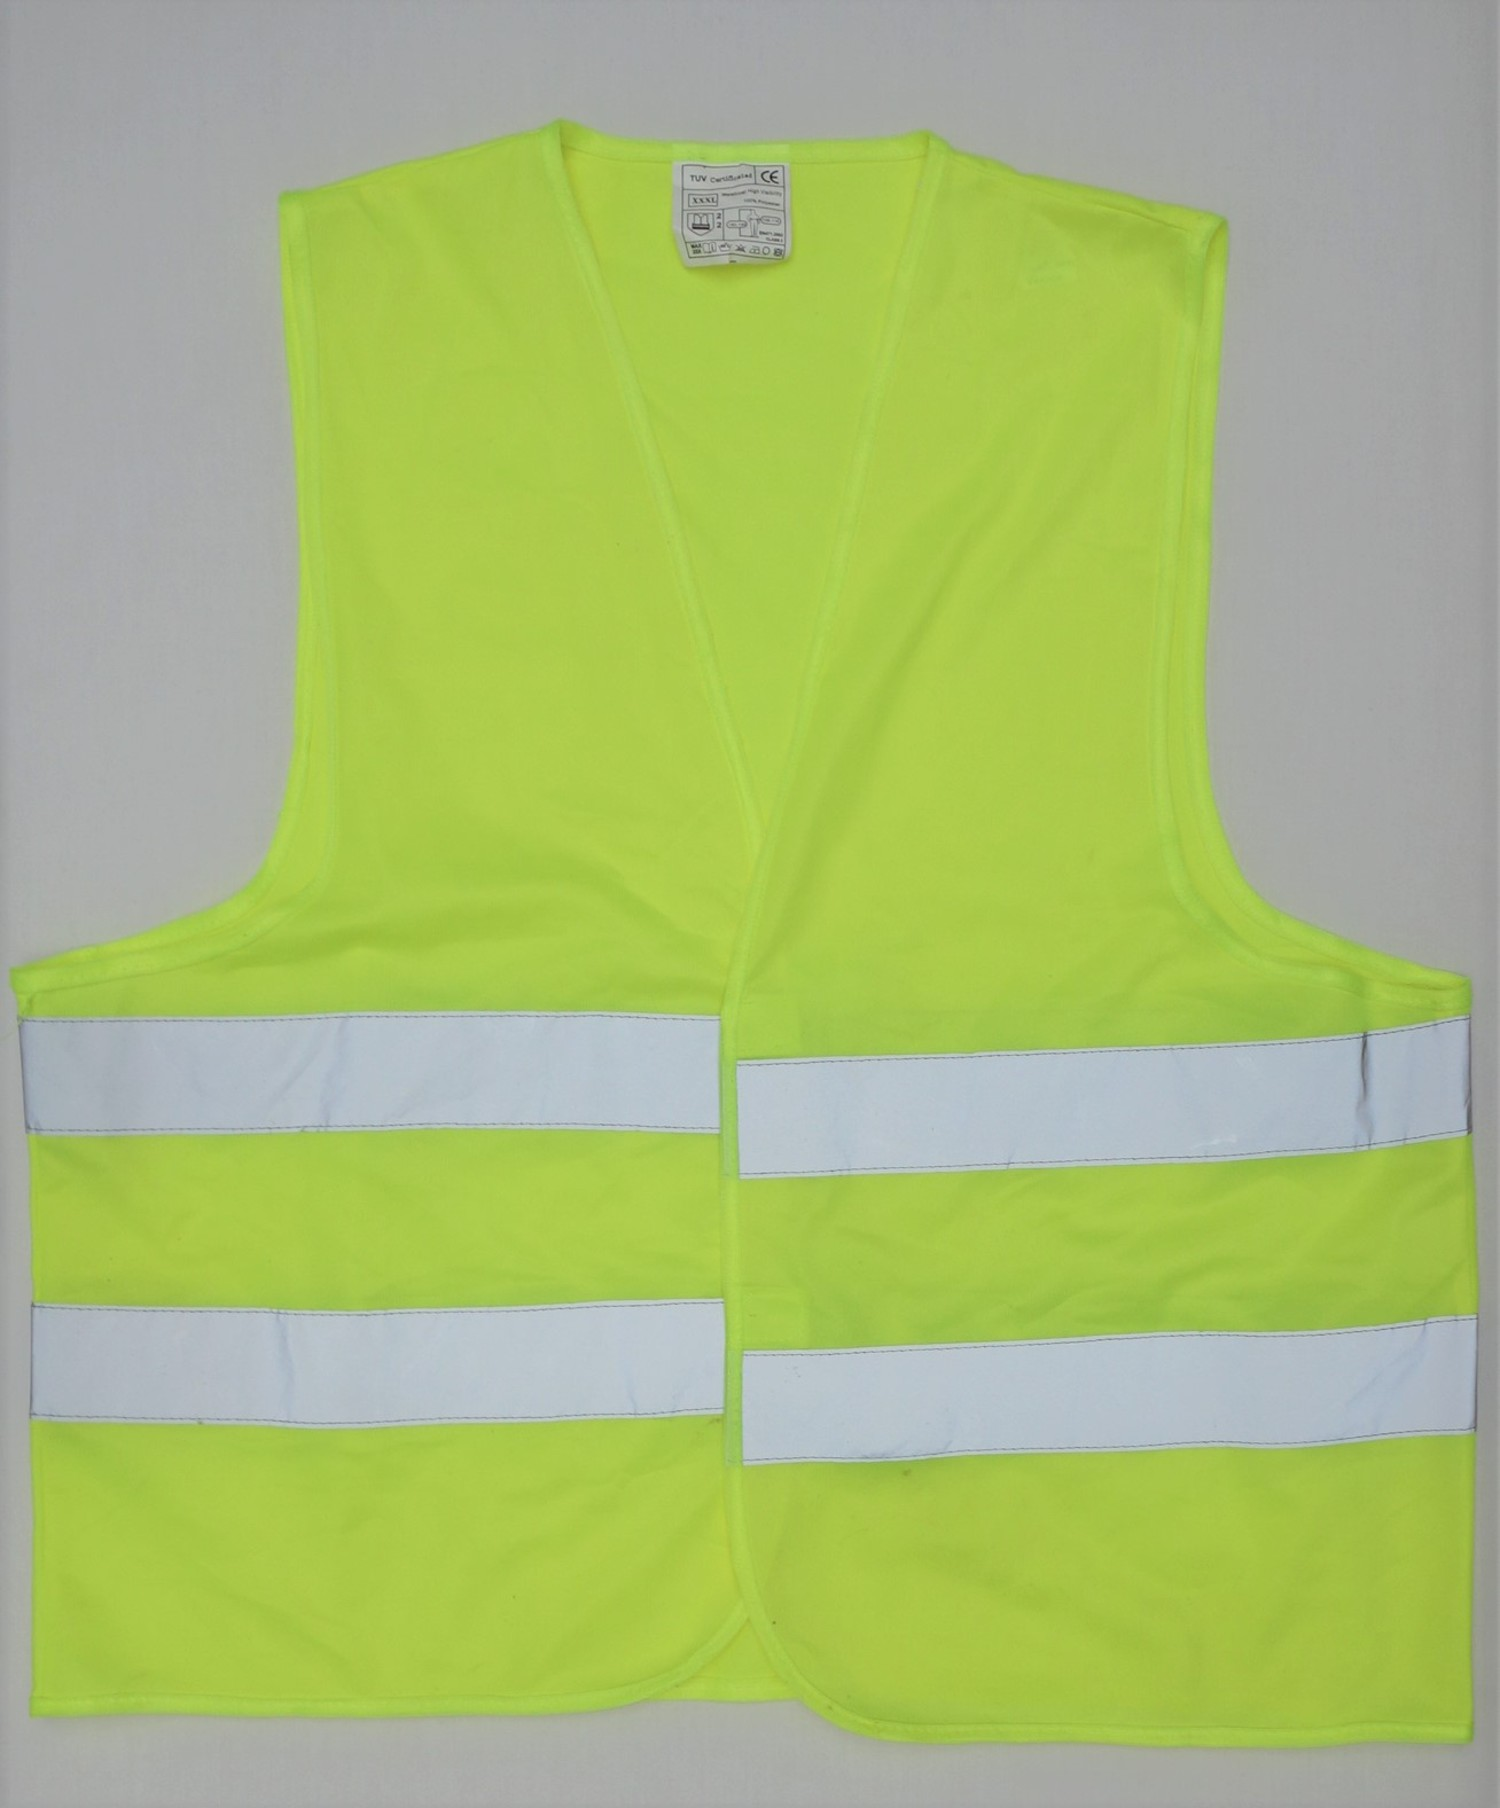 A gilet jaune, or yellow jacket, from France, the symbol of anti-government protests (TRC 2019.0005